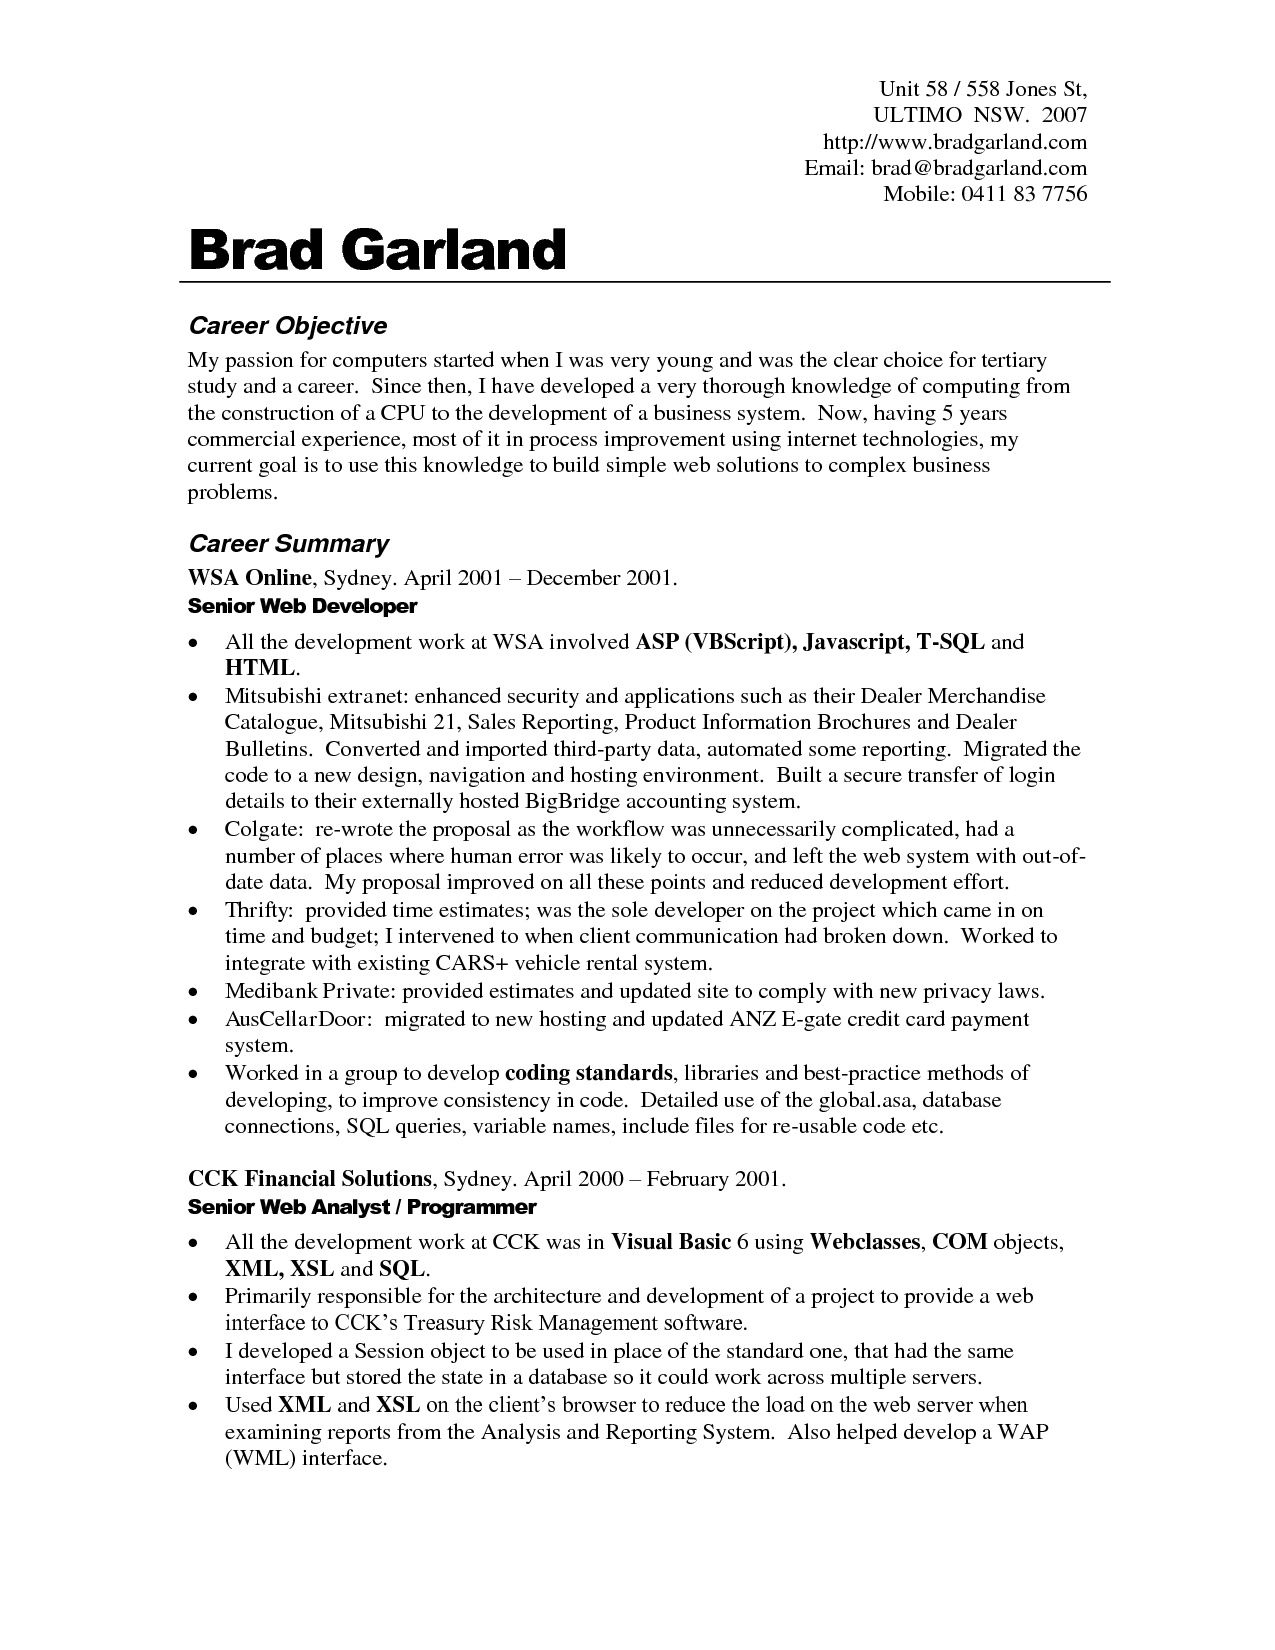 resume samples career objective - Resume Writing Objectives